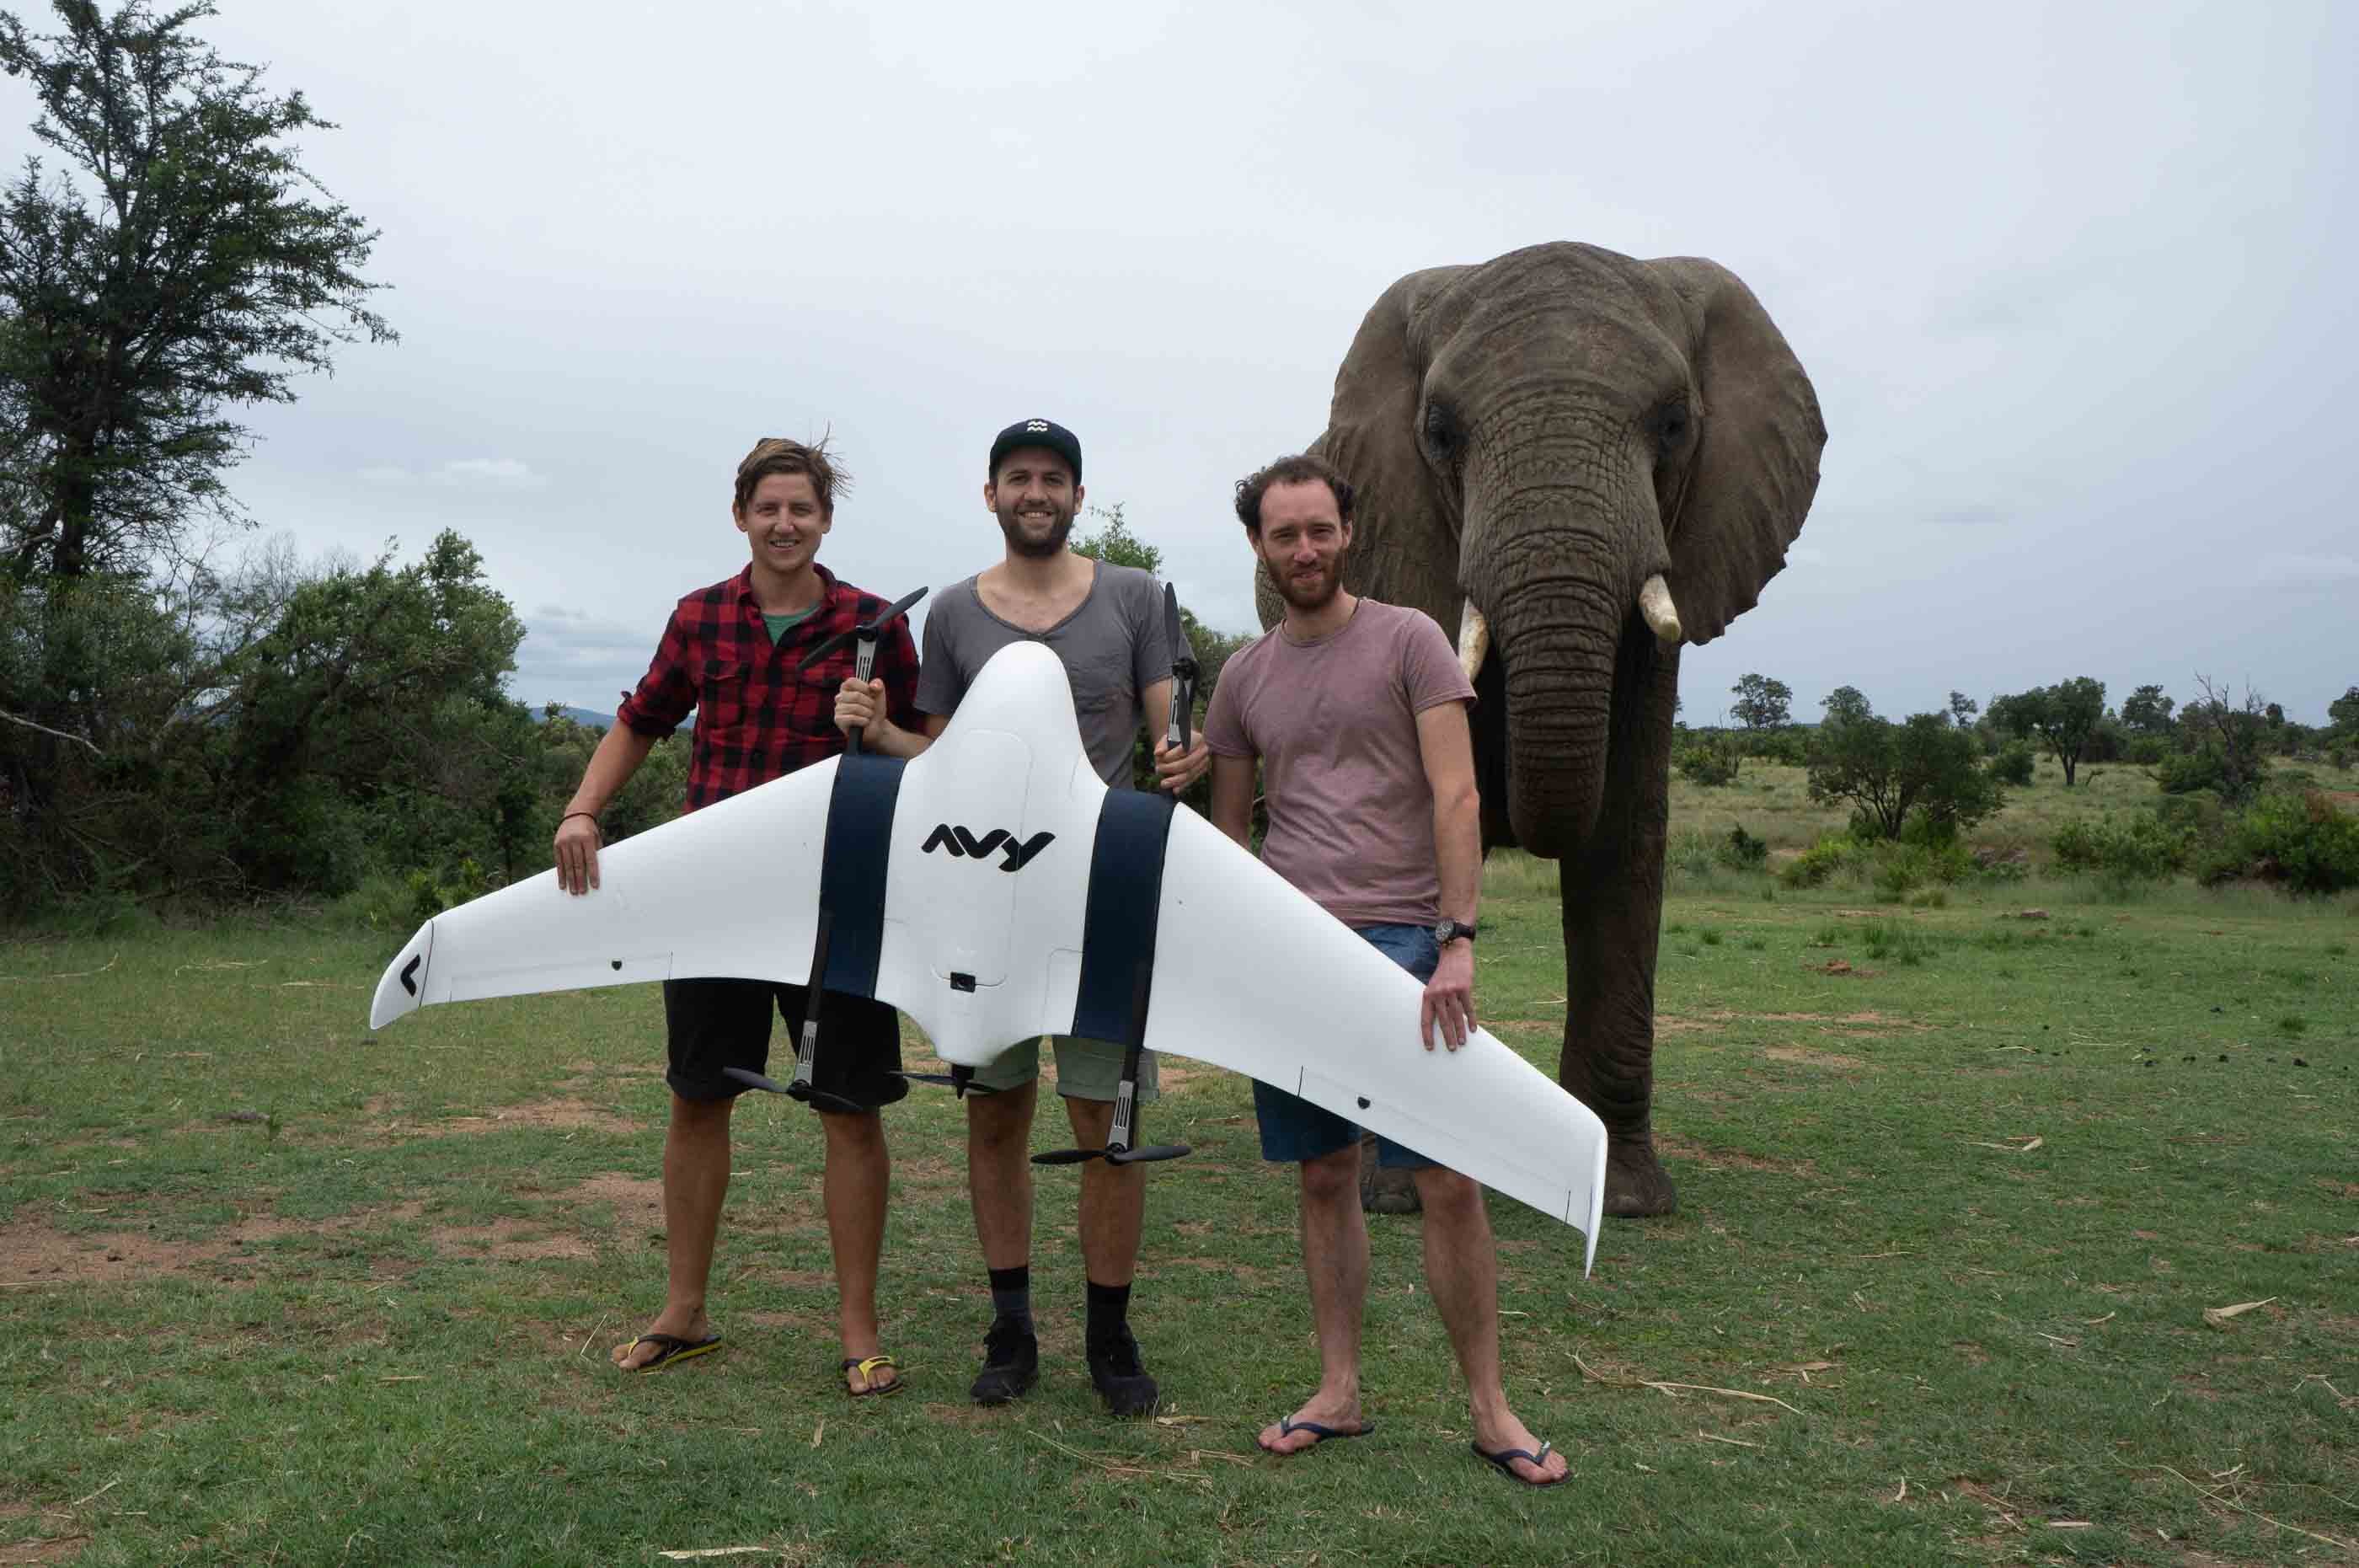 The team with the drone and elephant